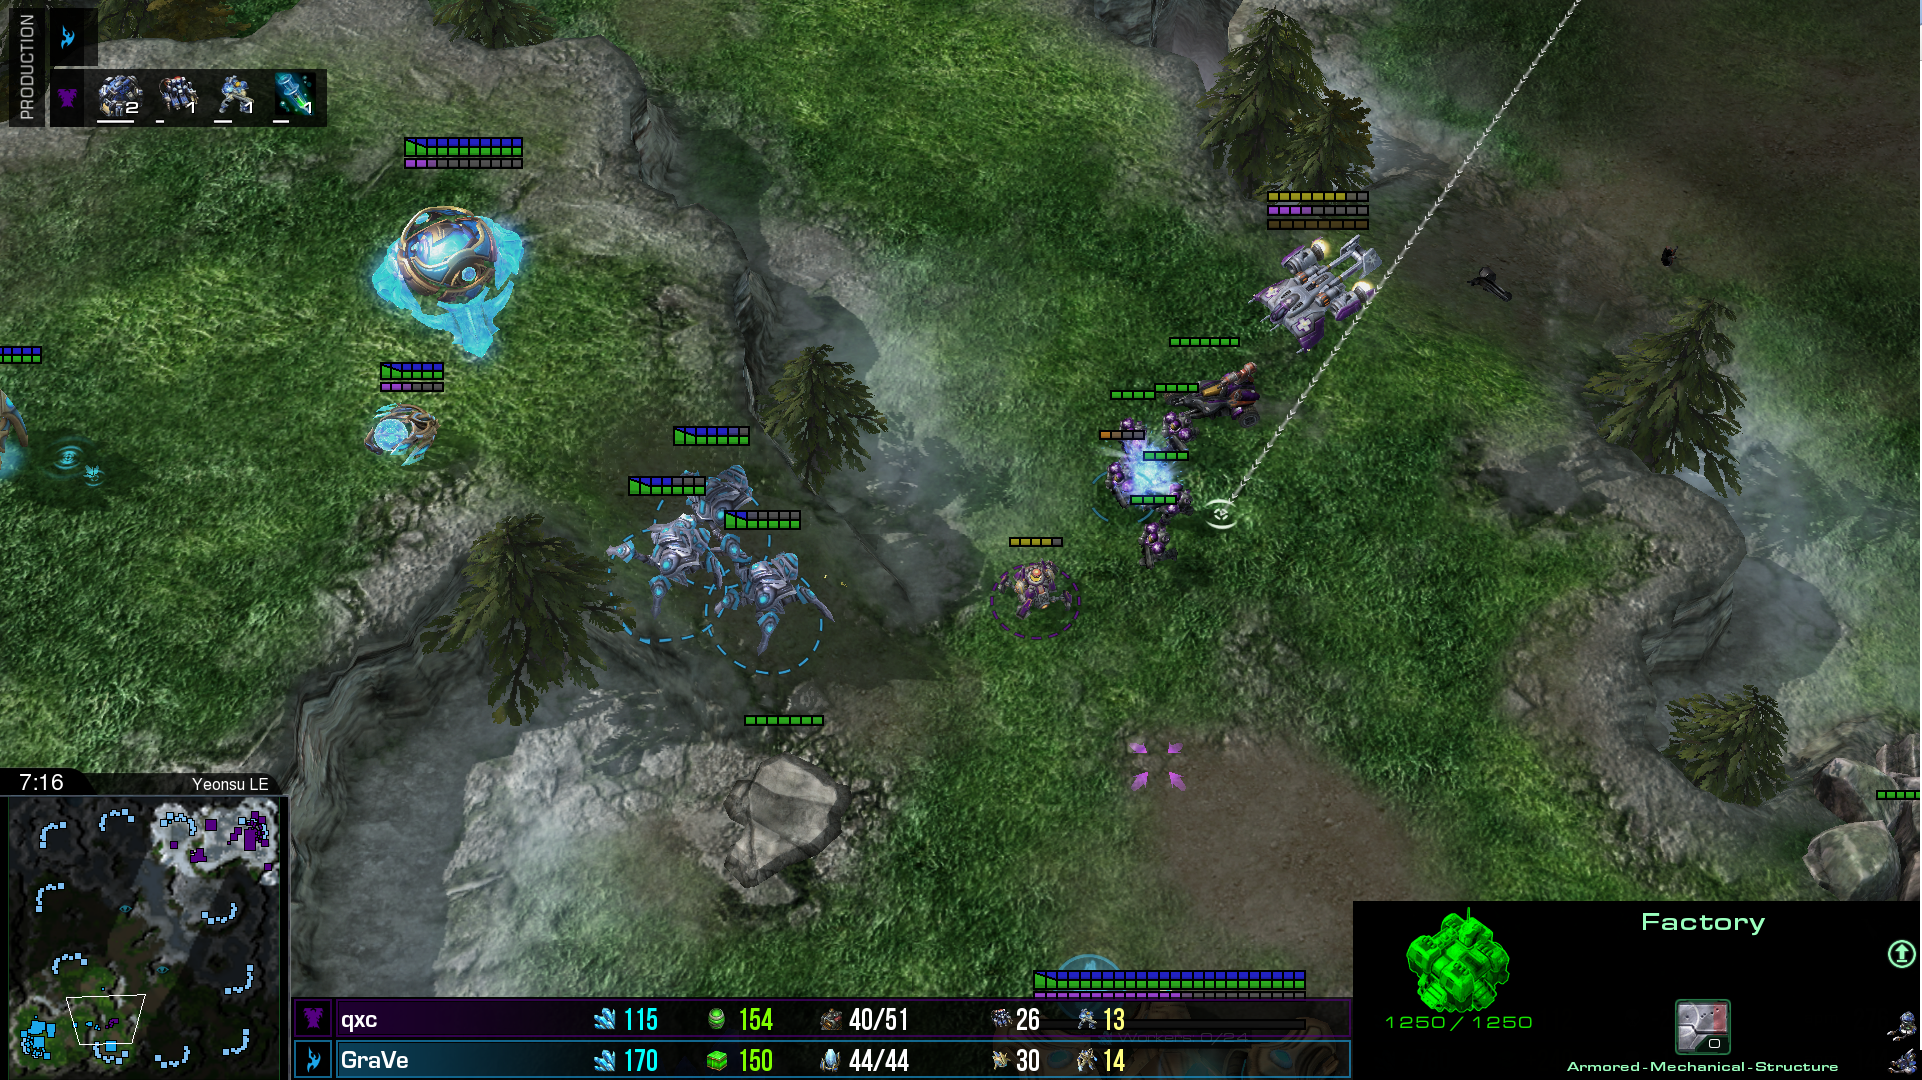 Qxc hit's GraVe with his gas first Hellion/Marine/Mine/Medivac Play